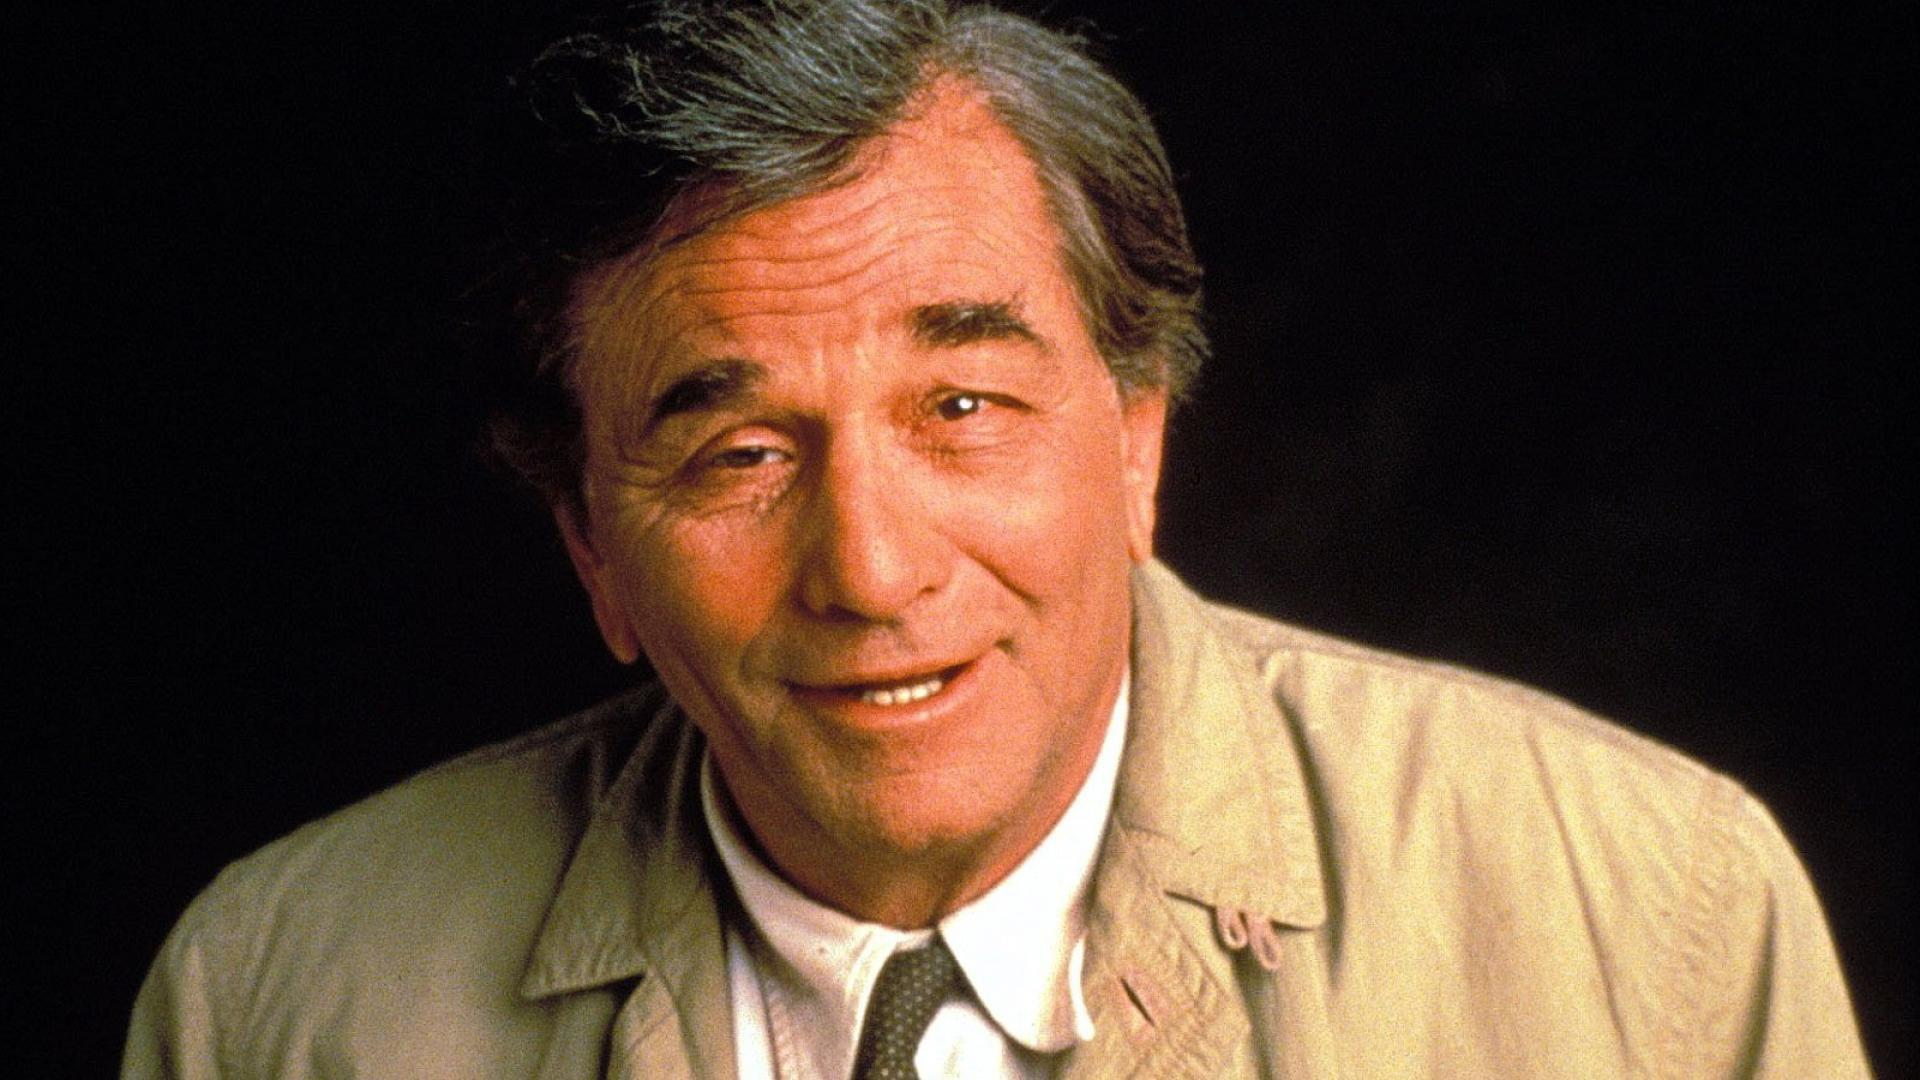 Faces columbo peter falk golden globe award wallpaper | (116638)